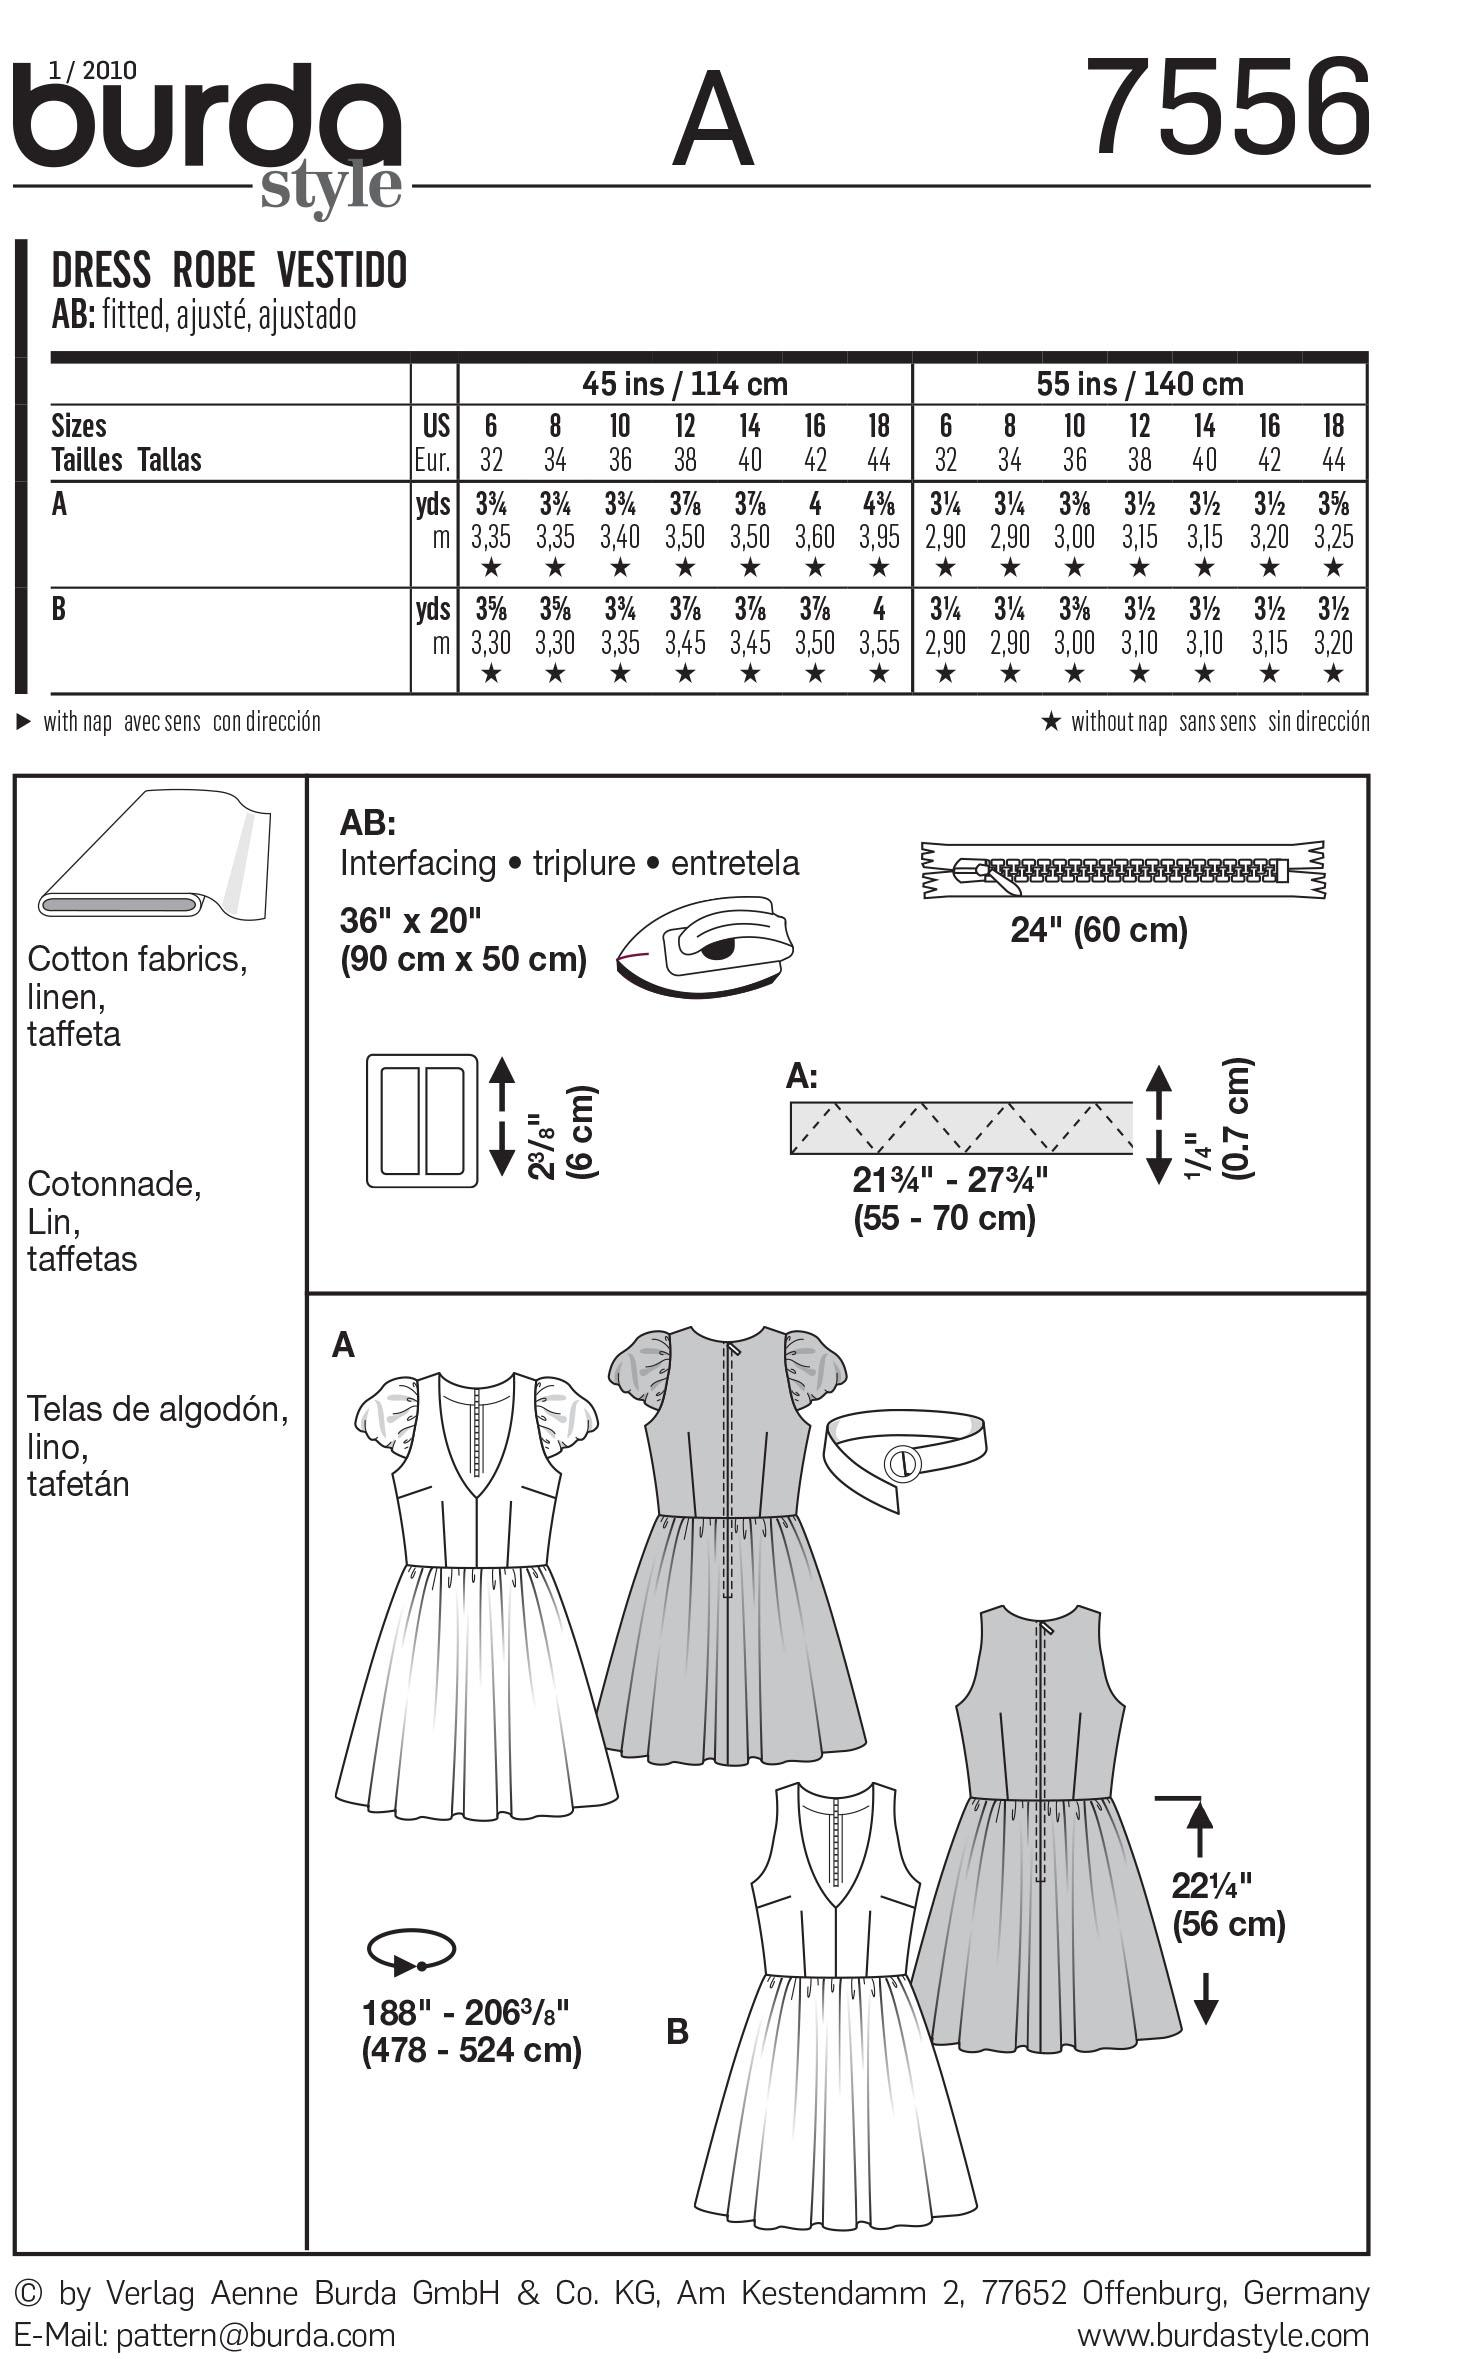 Burda B7556 Dress Sewing Pattern